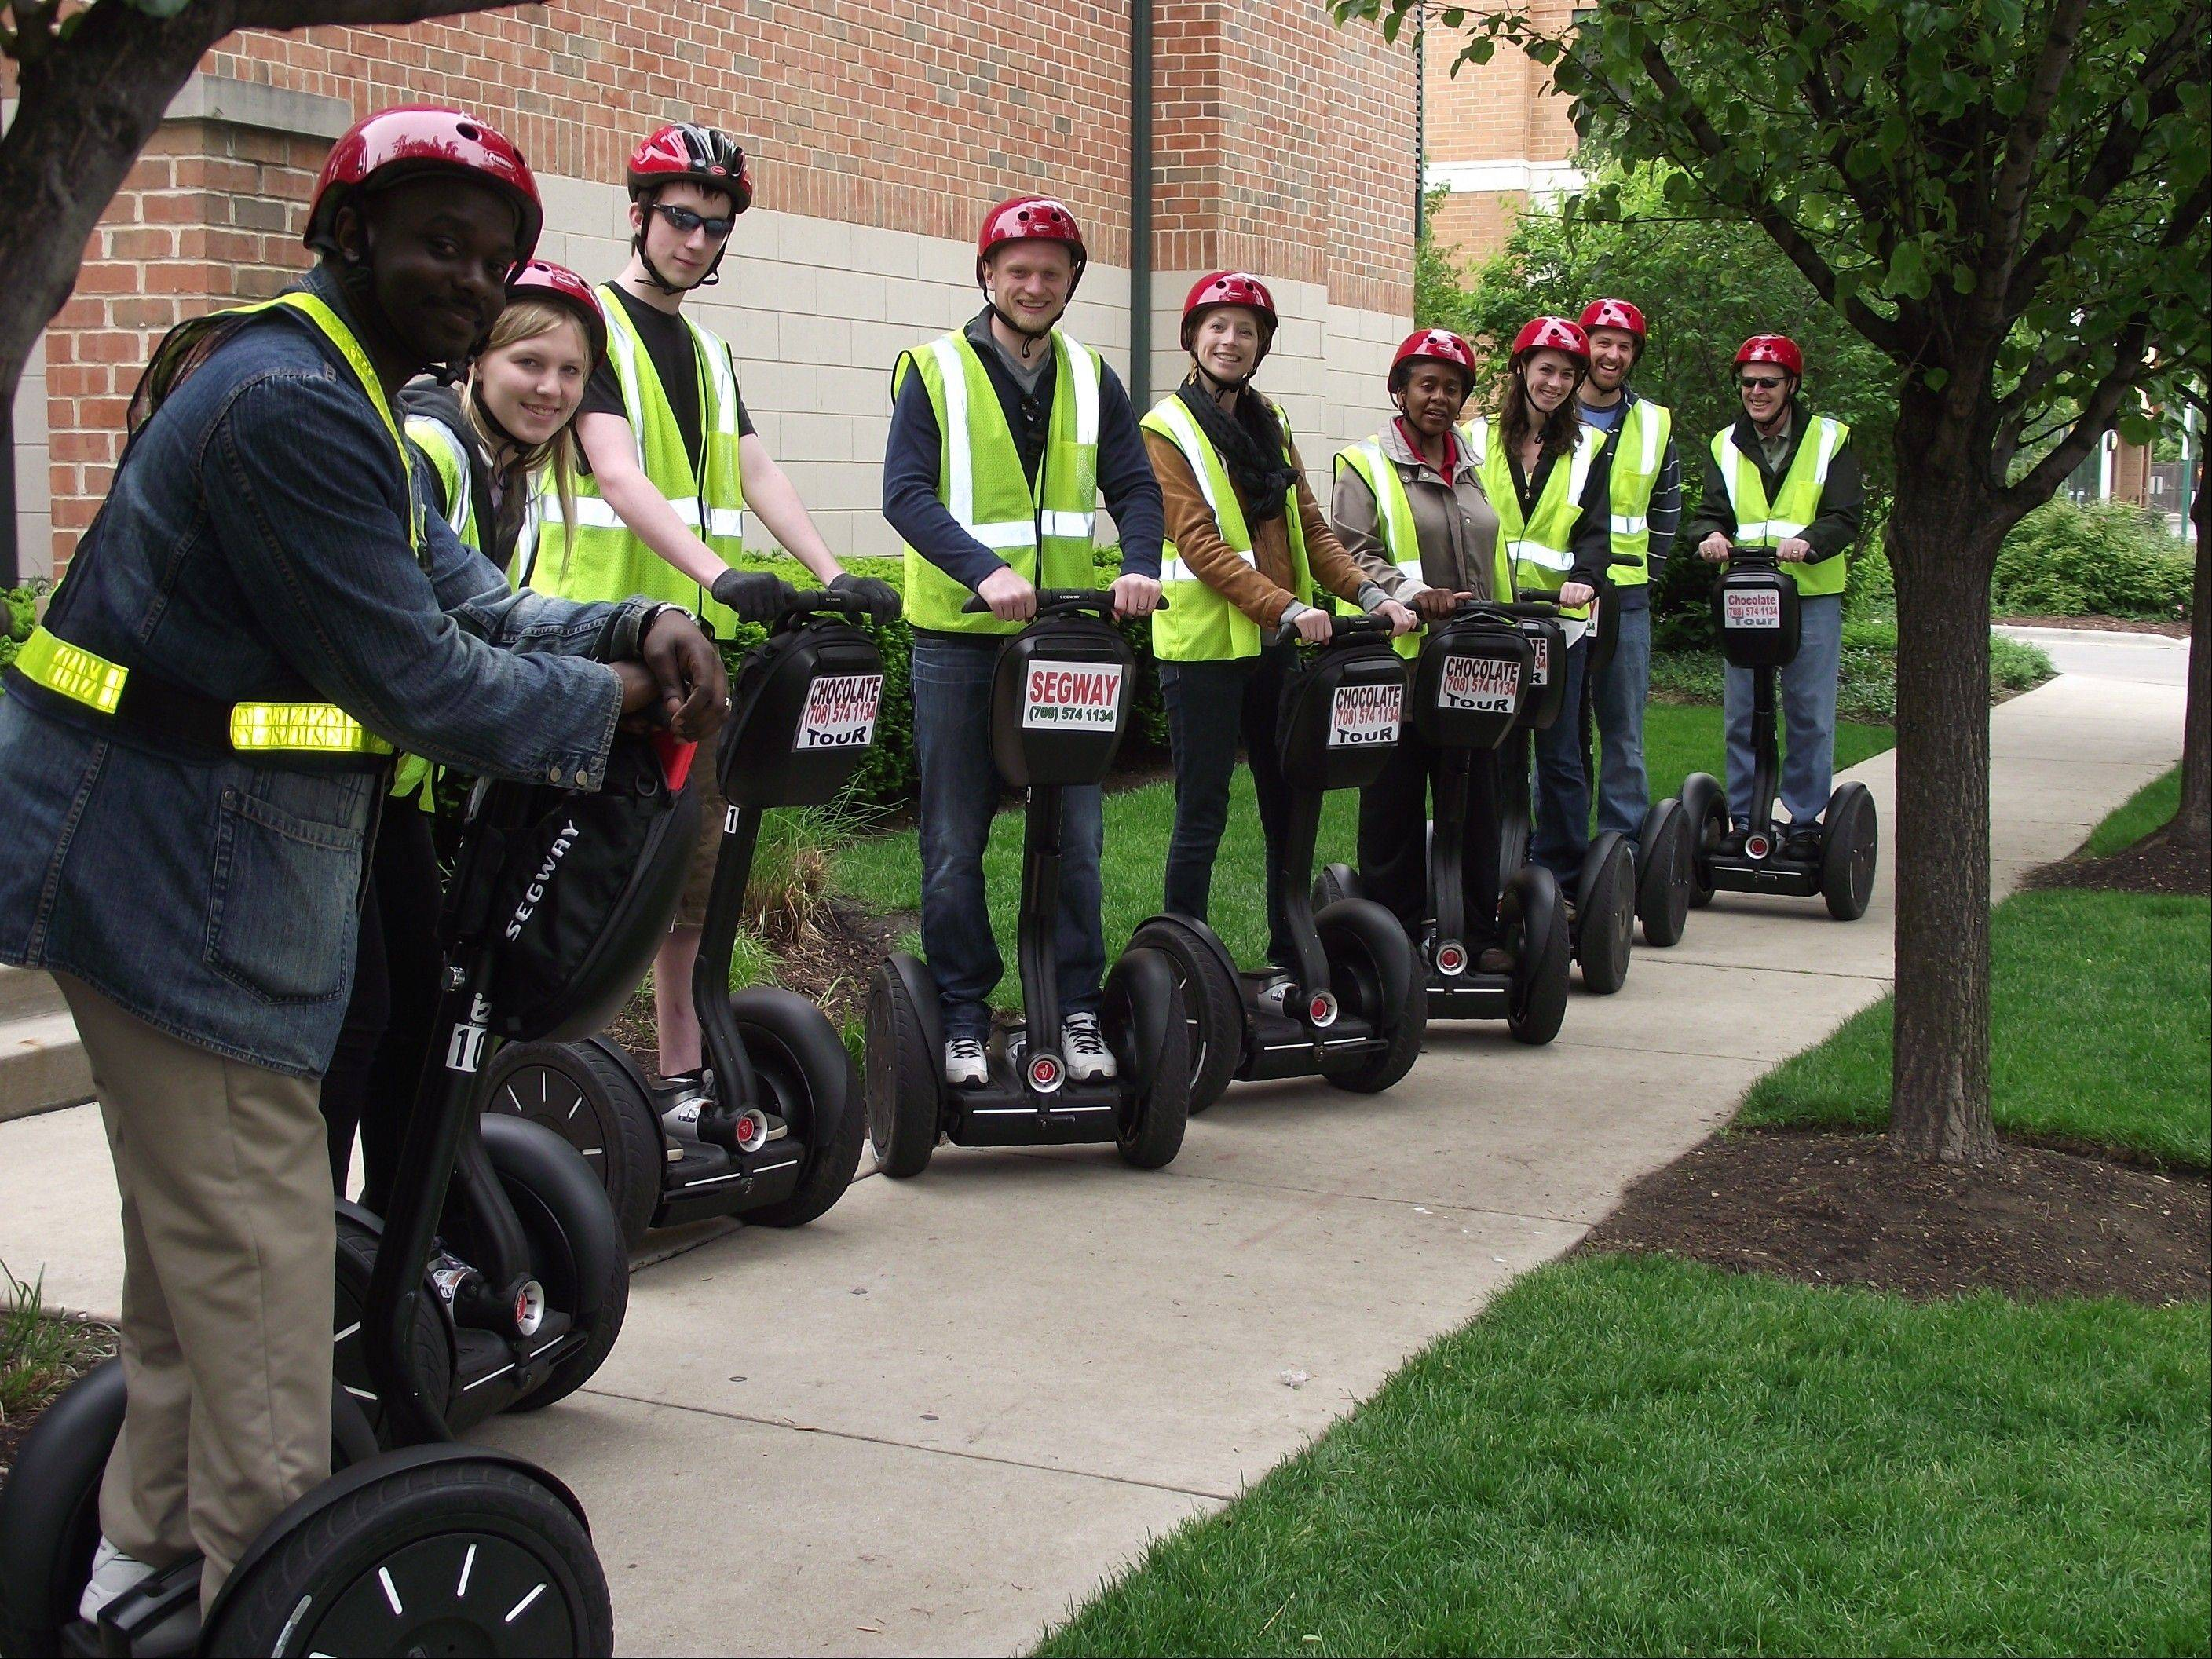 Oak Park Segway teams up with Greenline Wheels and Rickshaw Rick for the Haunted Squeals on Wheels: Oak Park Spooky Tales Tour.